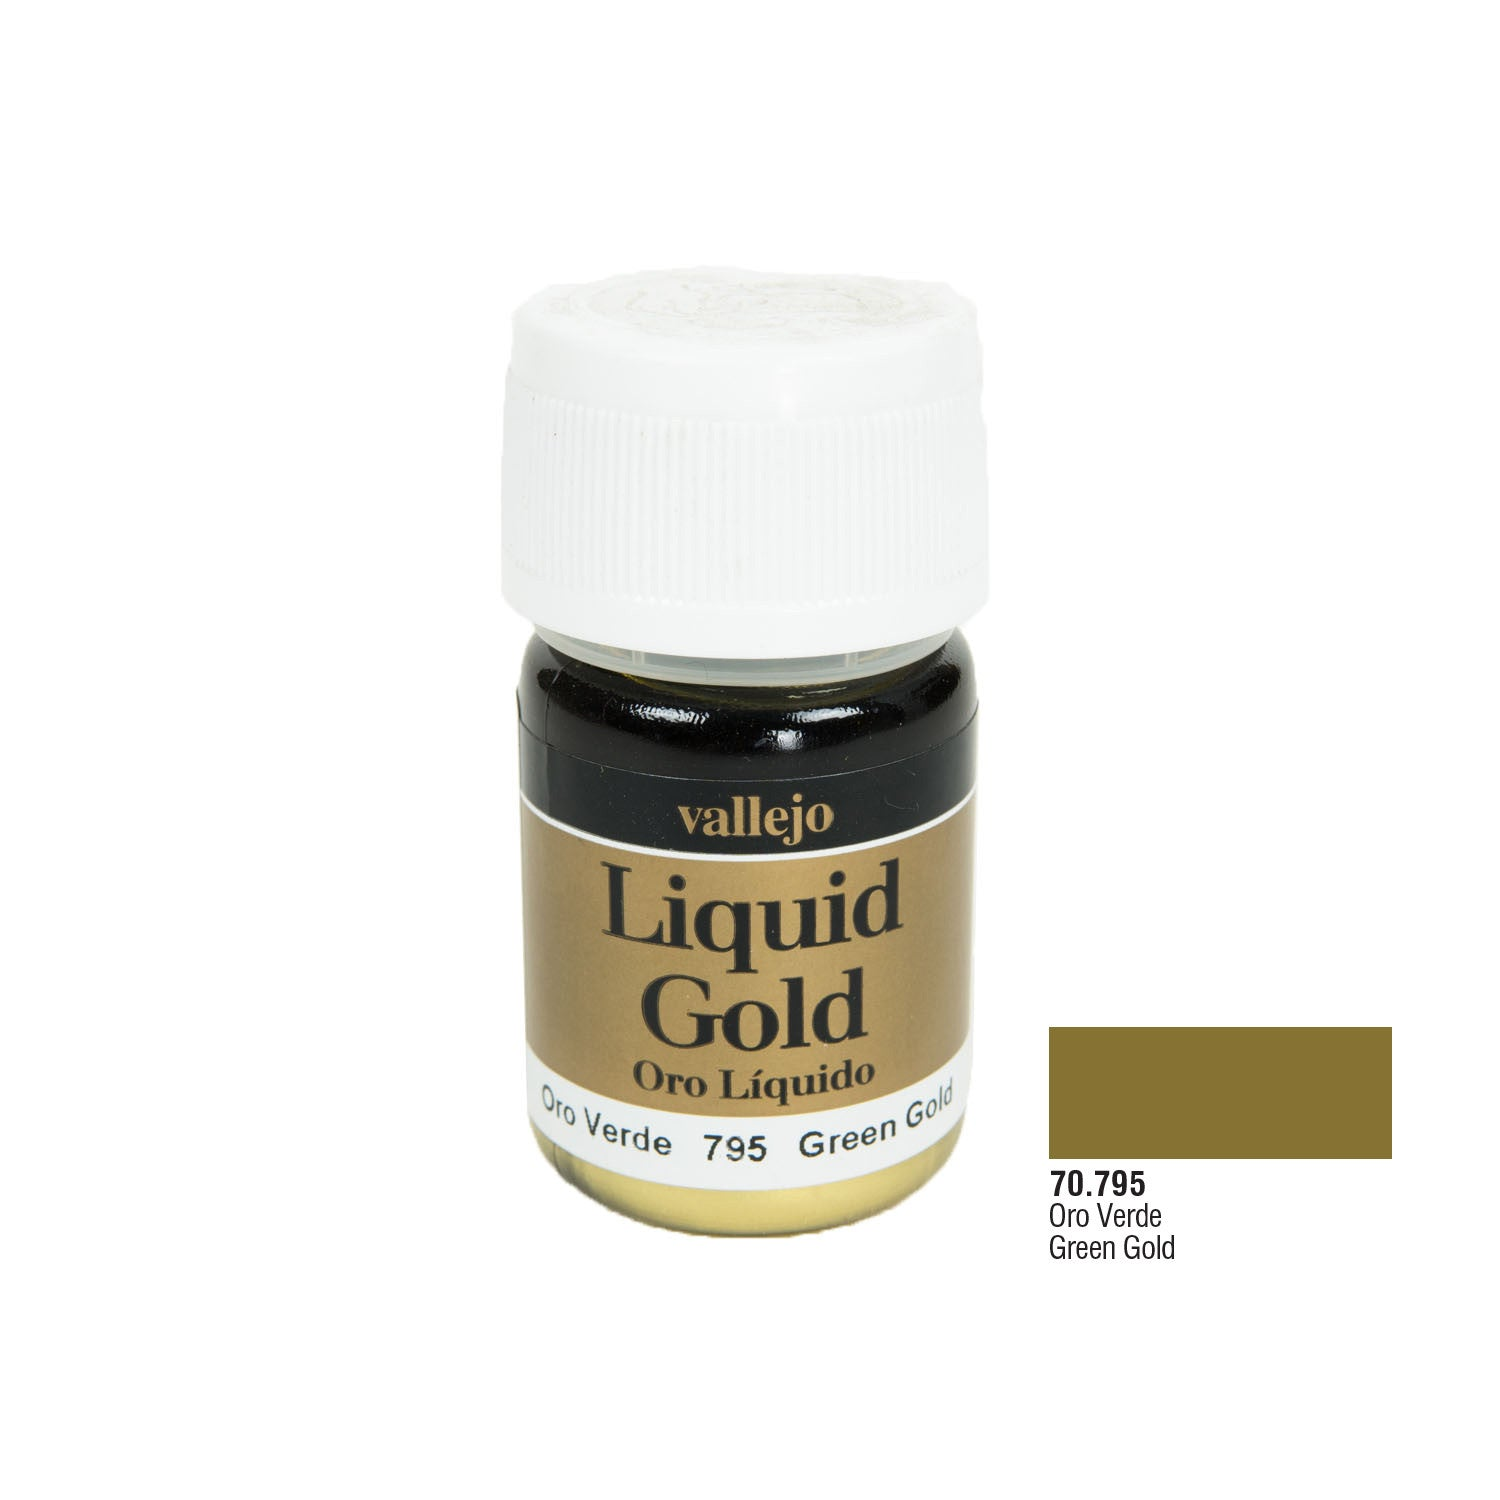 Vallejo 70.795 Liquid Gold: Green Gold, (Alcohol Based), 35 ml